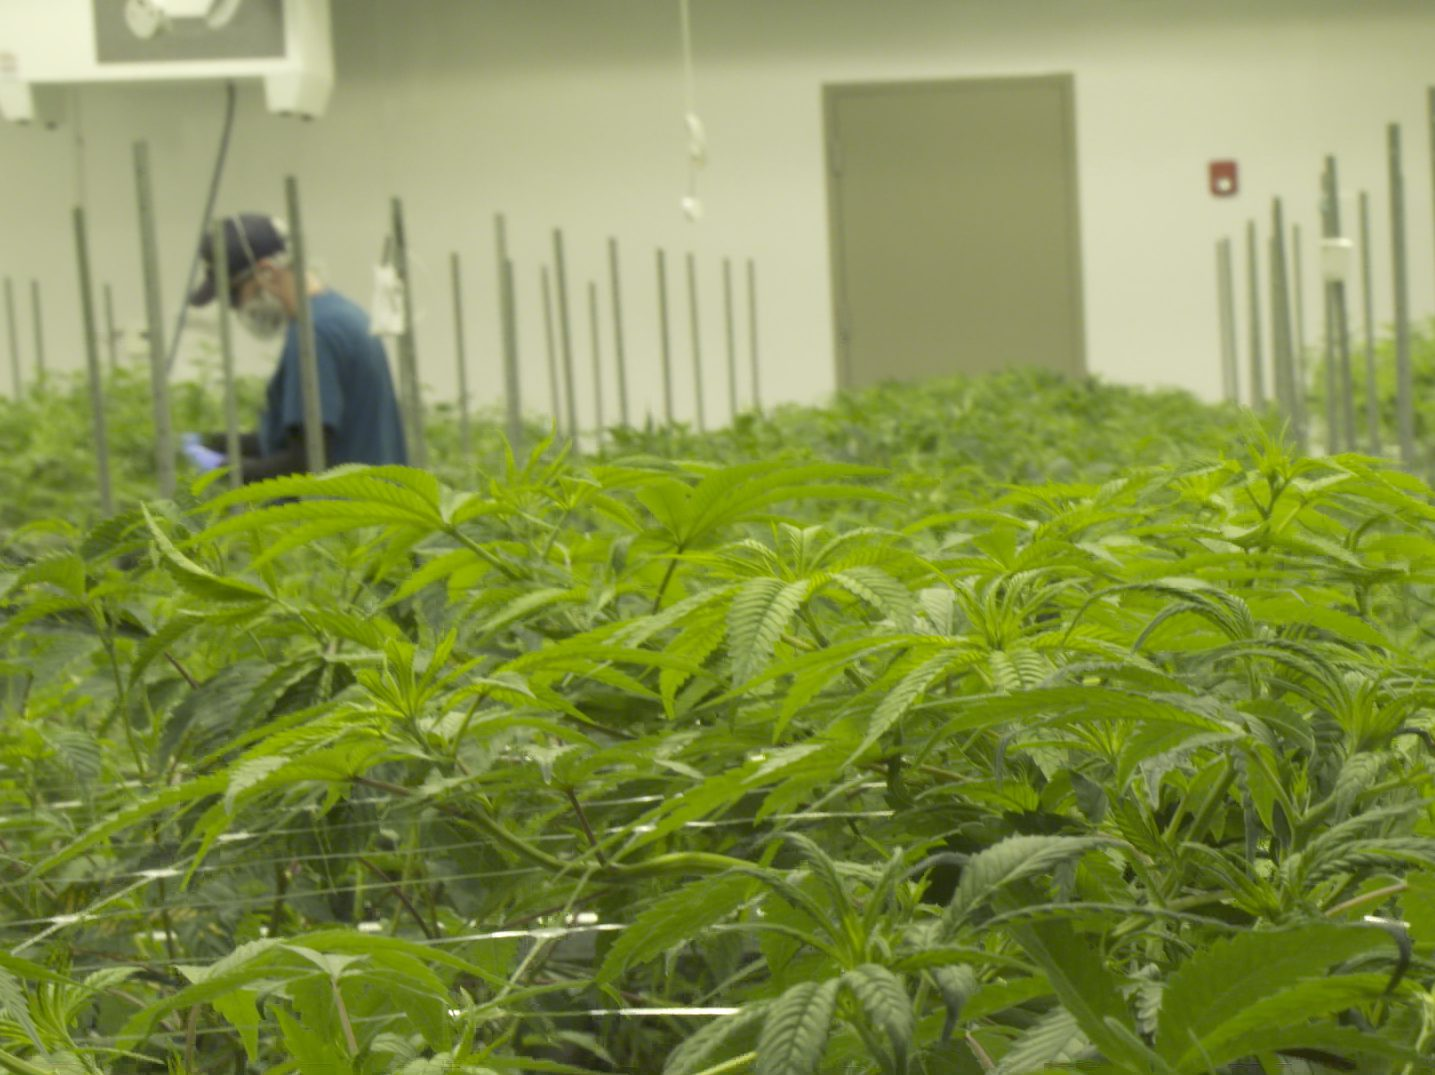 Cresco Labs' cannabis cultivation facility in Joliet. | Anne Costabile/Sun-Times